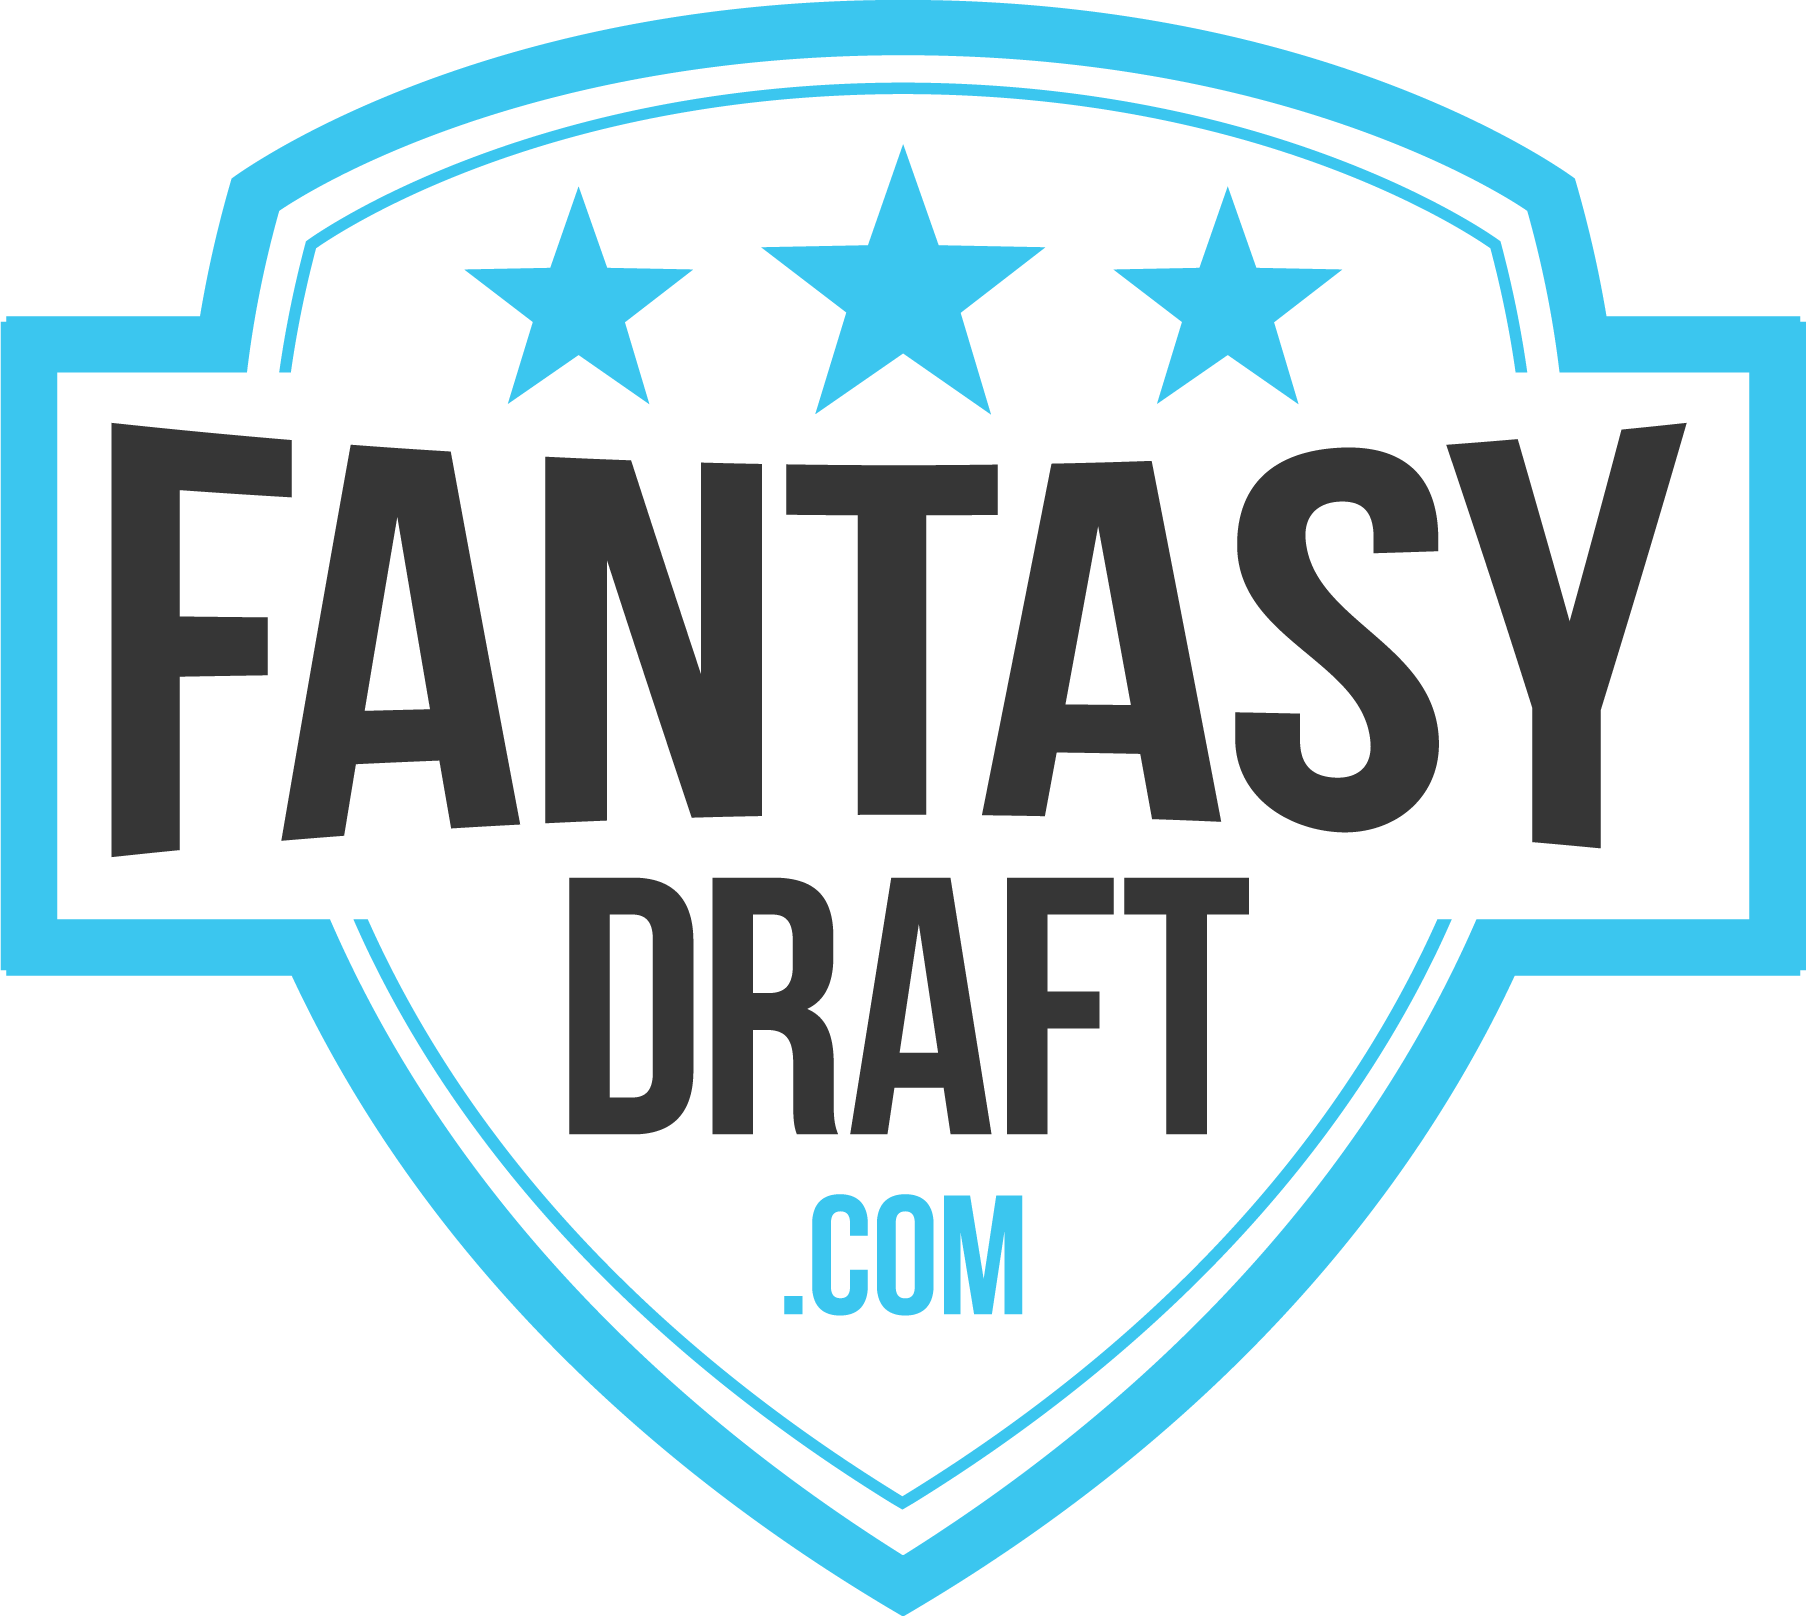 FantasyDraft offers Lower Multi-Entry Caps keep the sharks at bay with a larger PayoutZone means 25% of users win cash in featured contests and Flexible Lineup structures which allow you to choose more of your favorite players. PLAY TODAY!